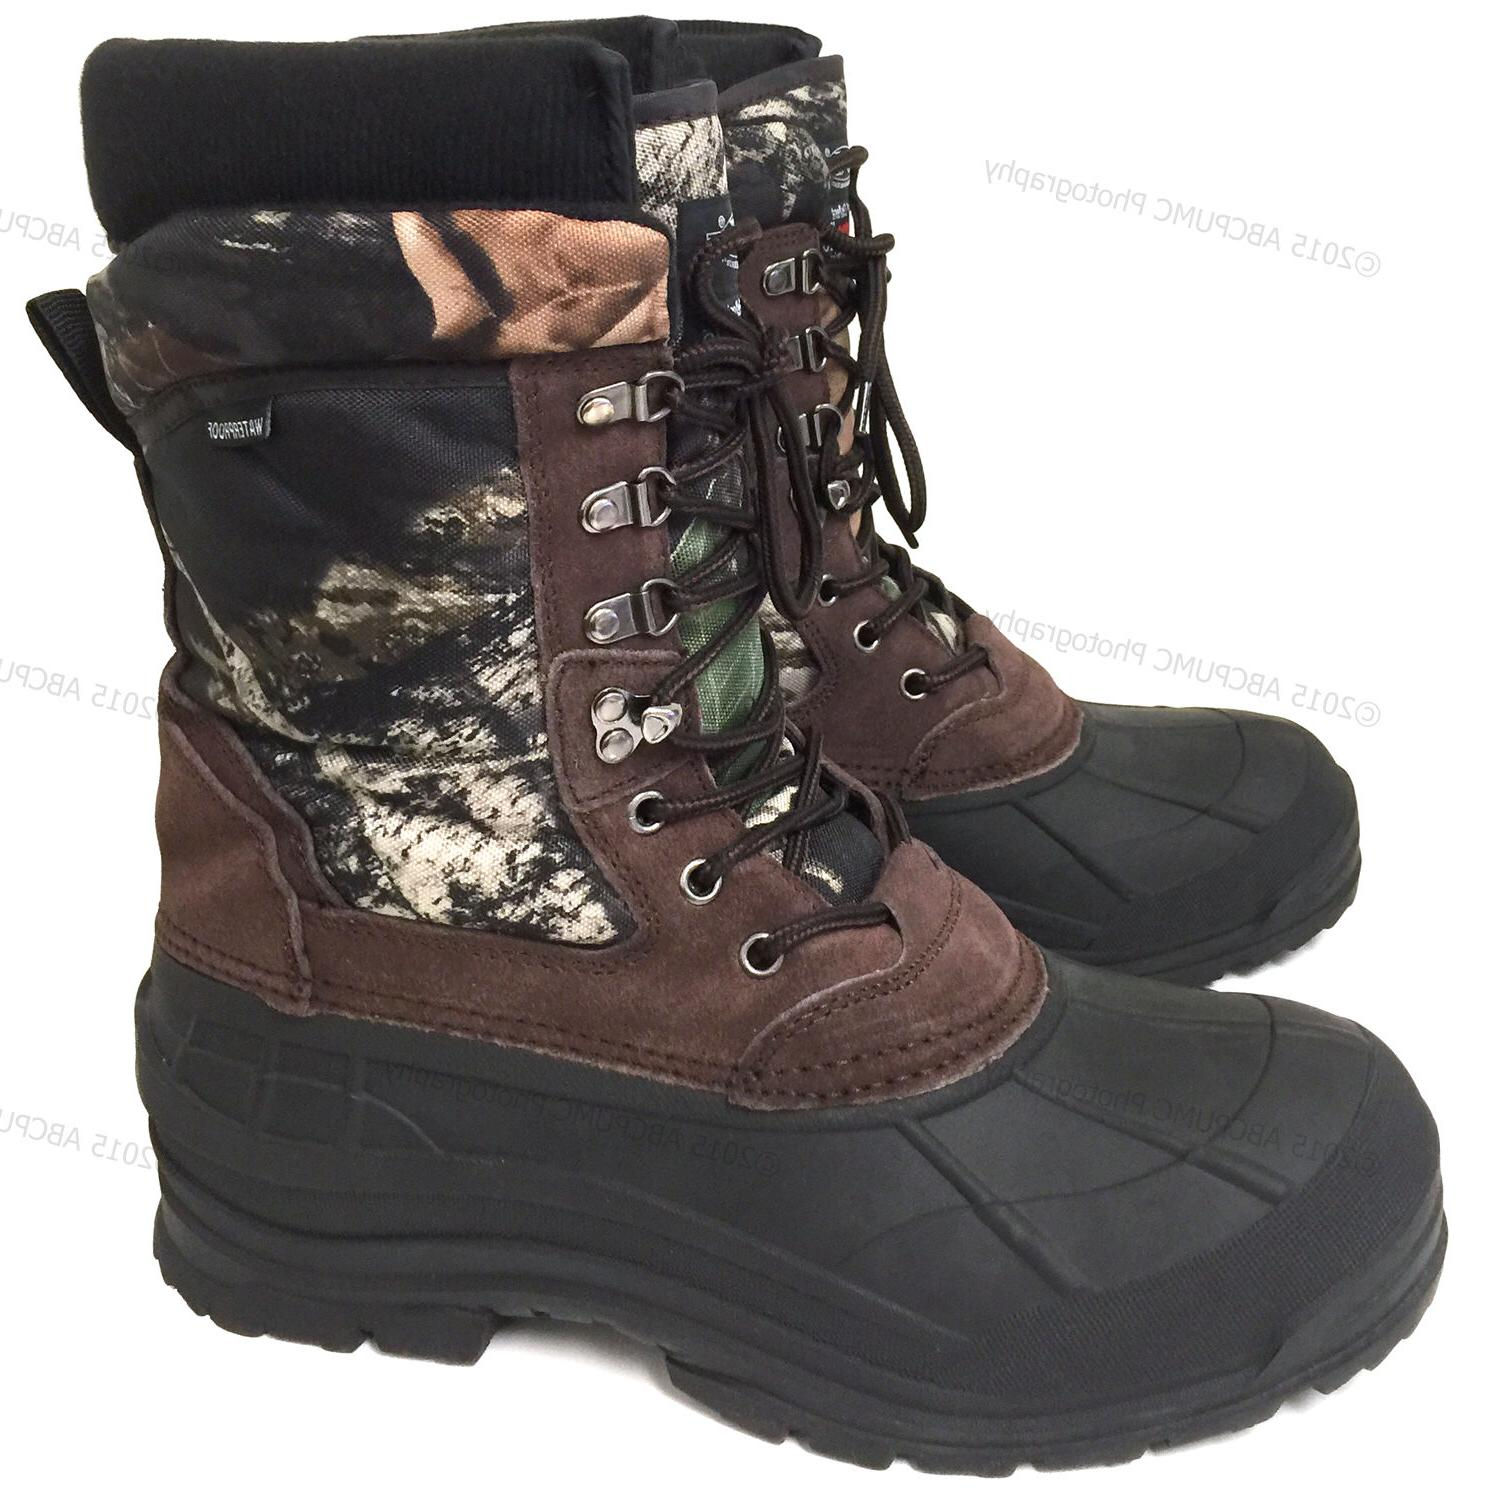 New Snow Boots Leather Waterproof